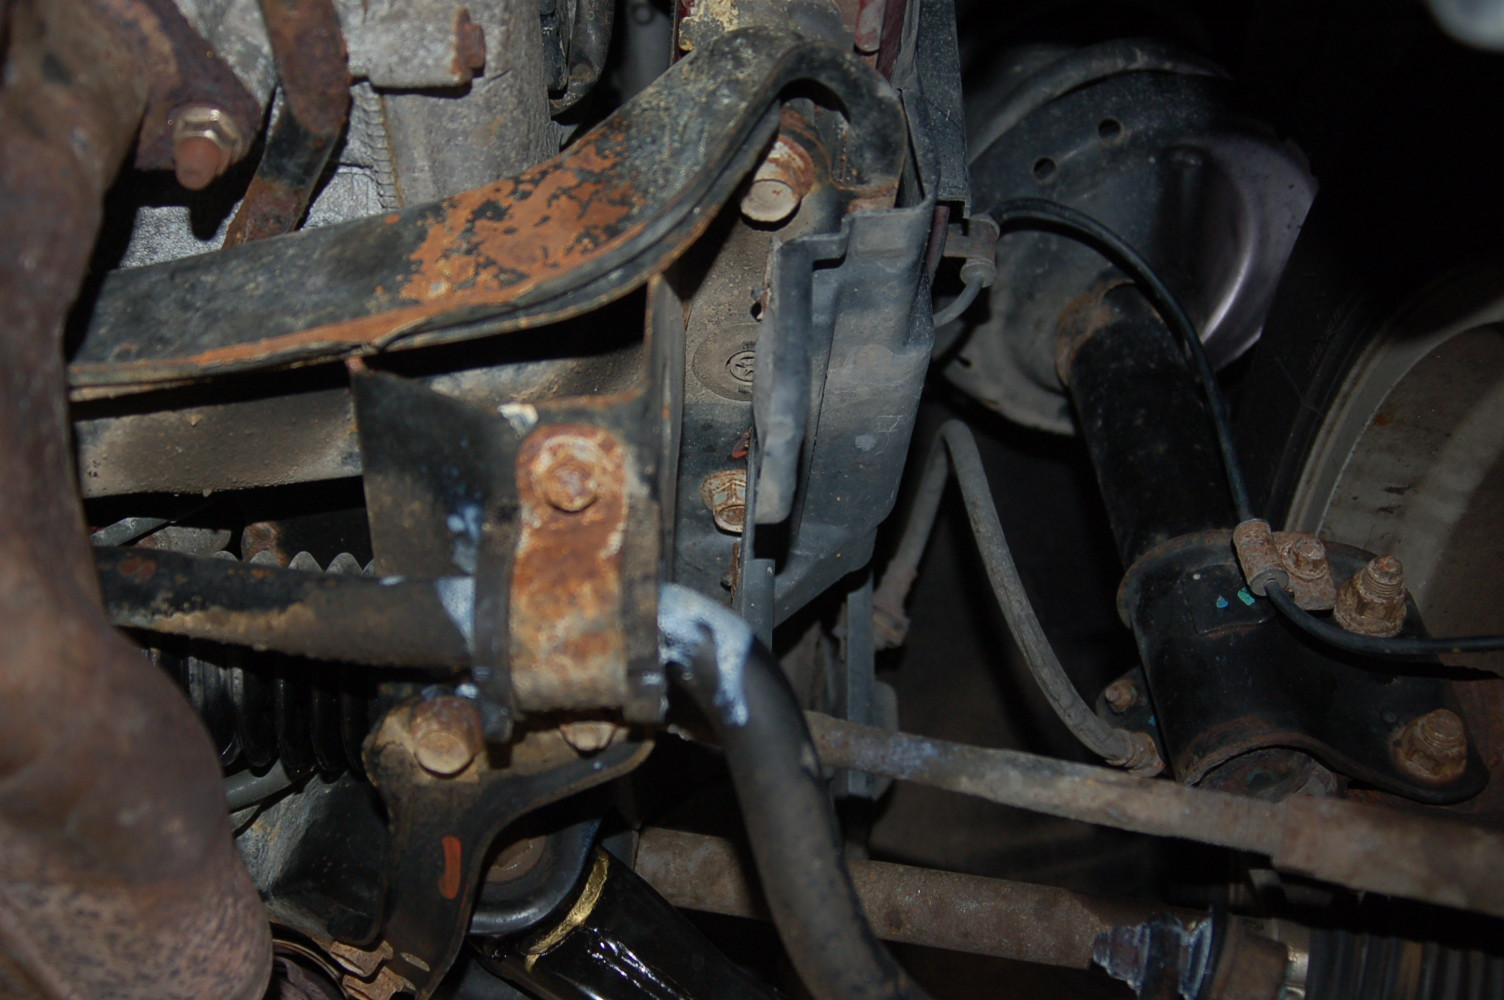 Used Cars Reno Nv >> used buying advice - too much rust (with pics)? - Subaru ...